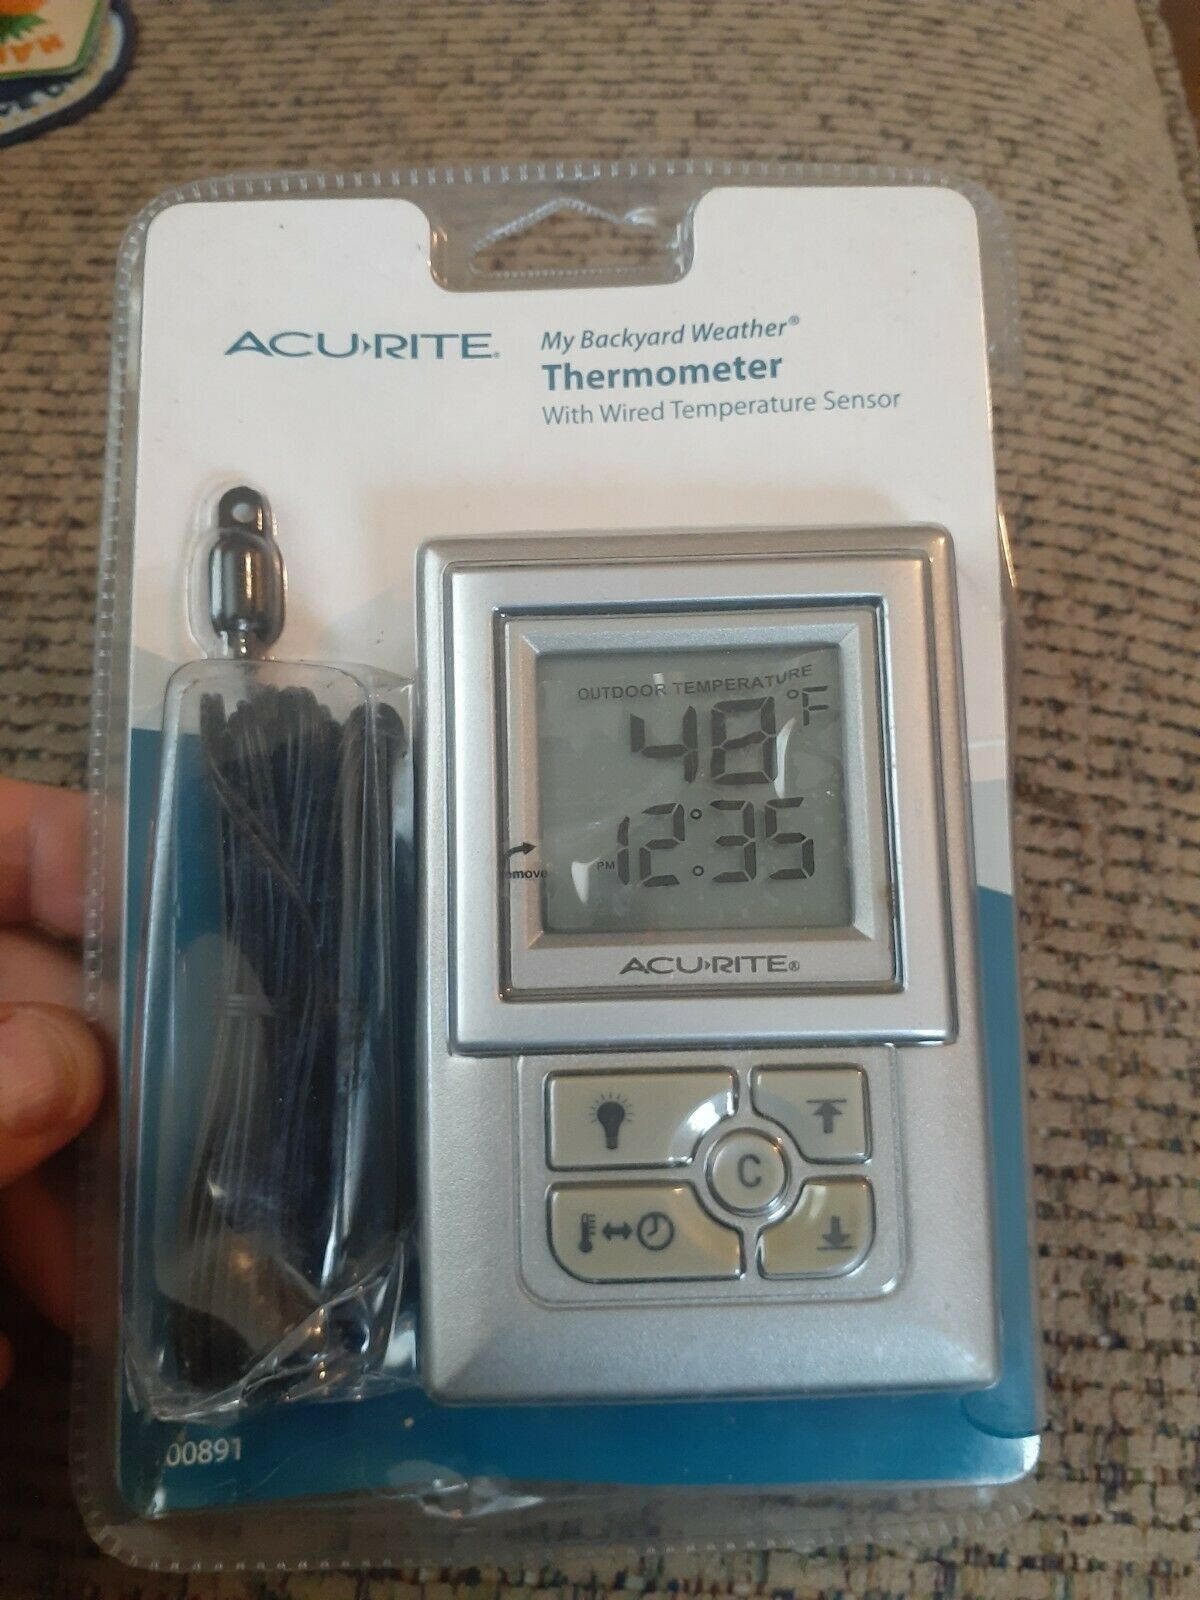 28+ Acurite My Backyard Weather Pictures - HomeLooker